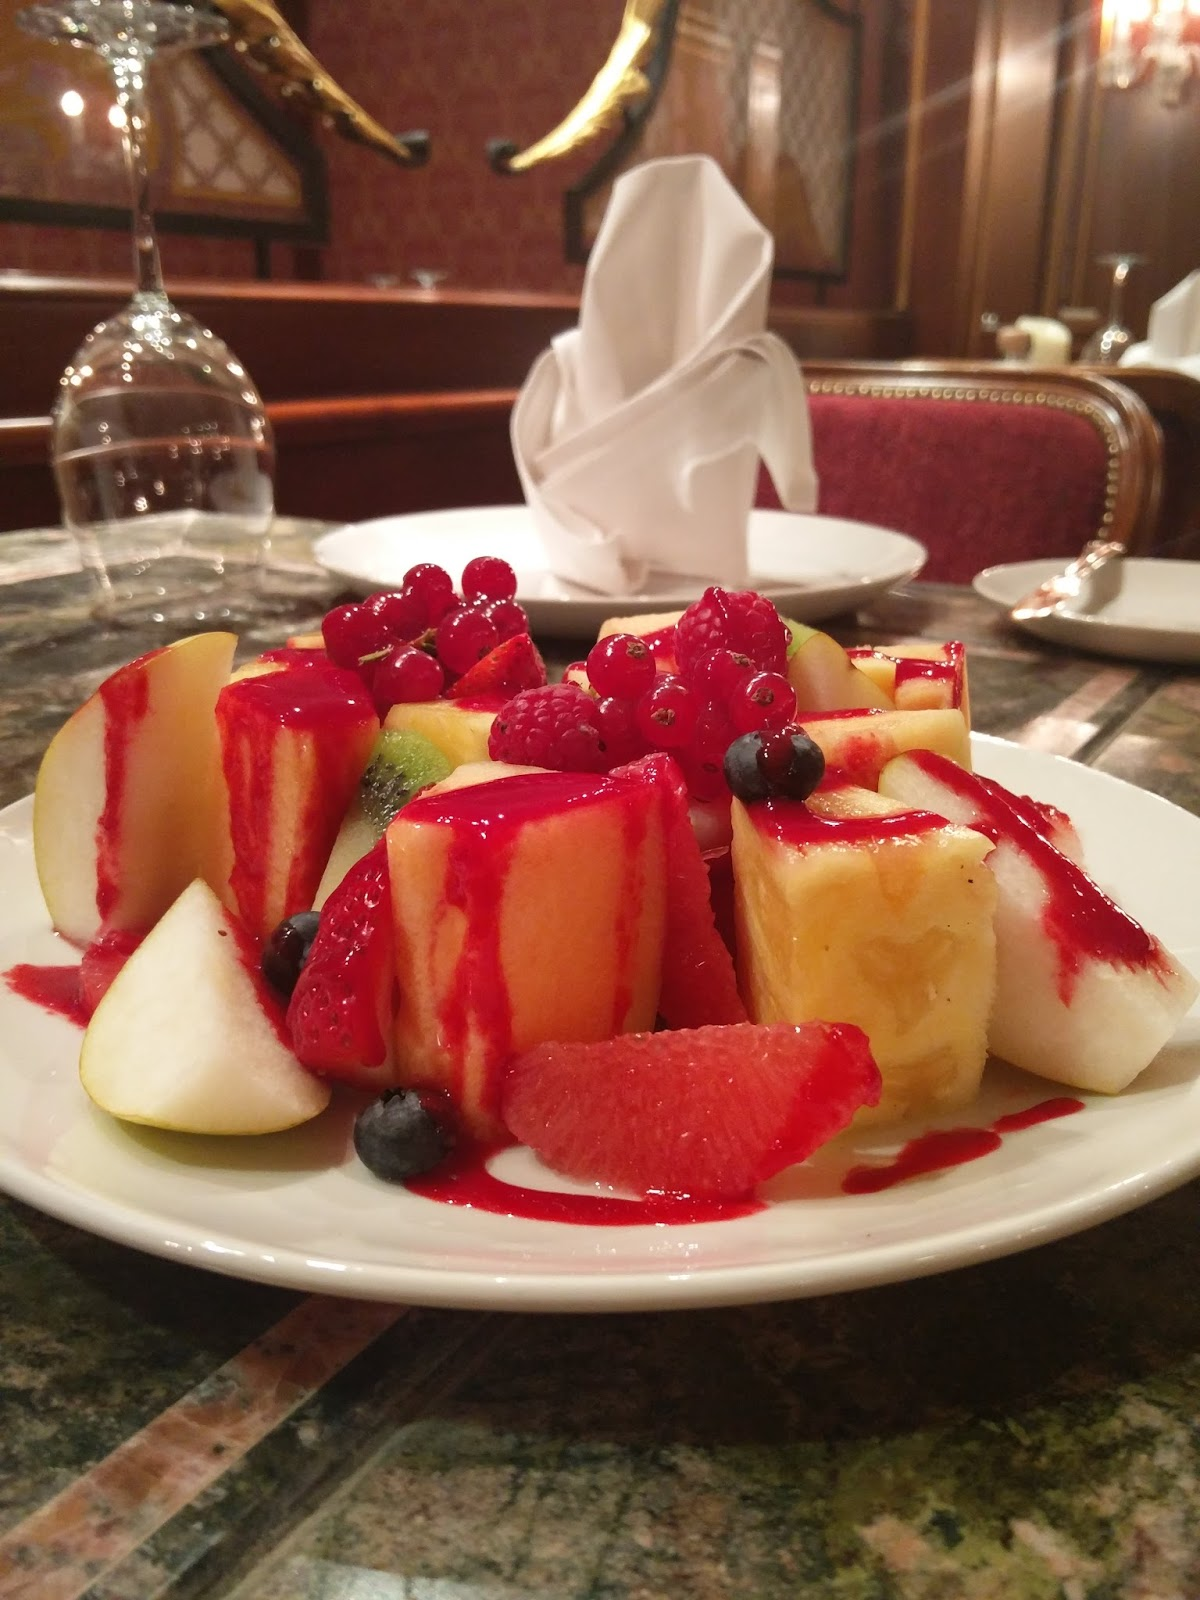 Grand hills revives with the opening of little paris for Fruit coulis